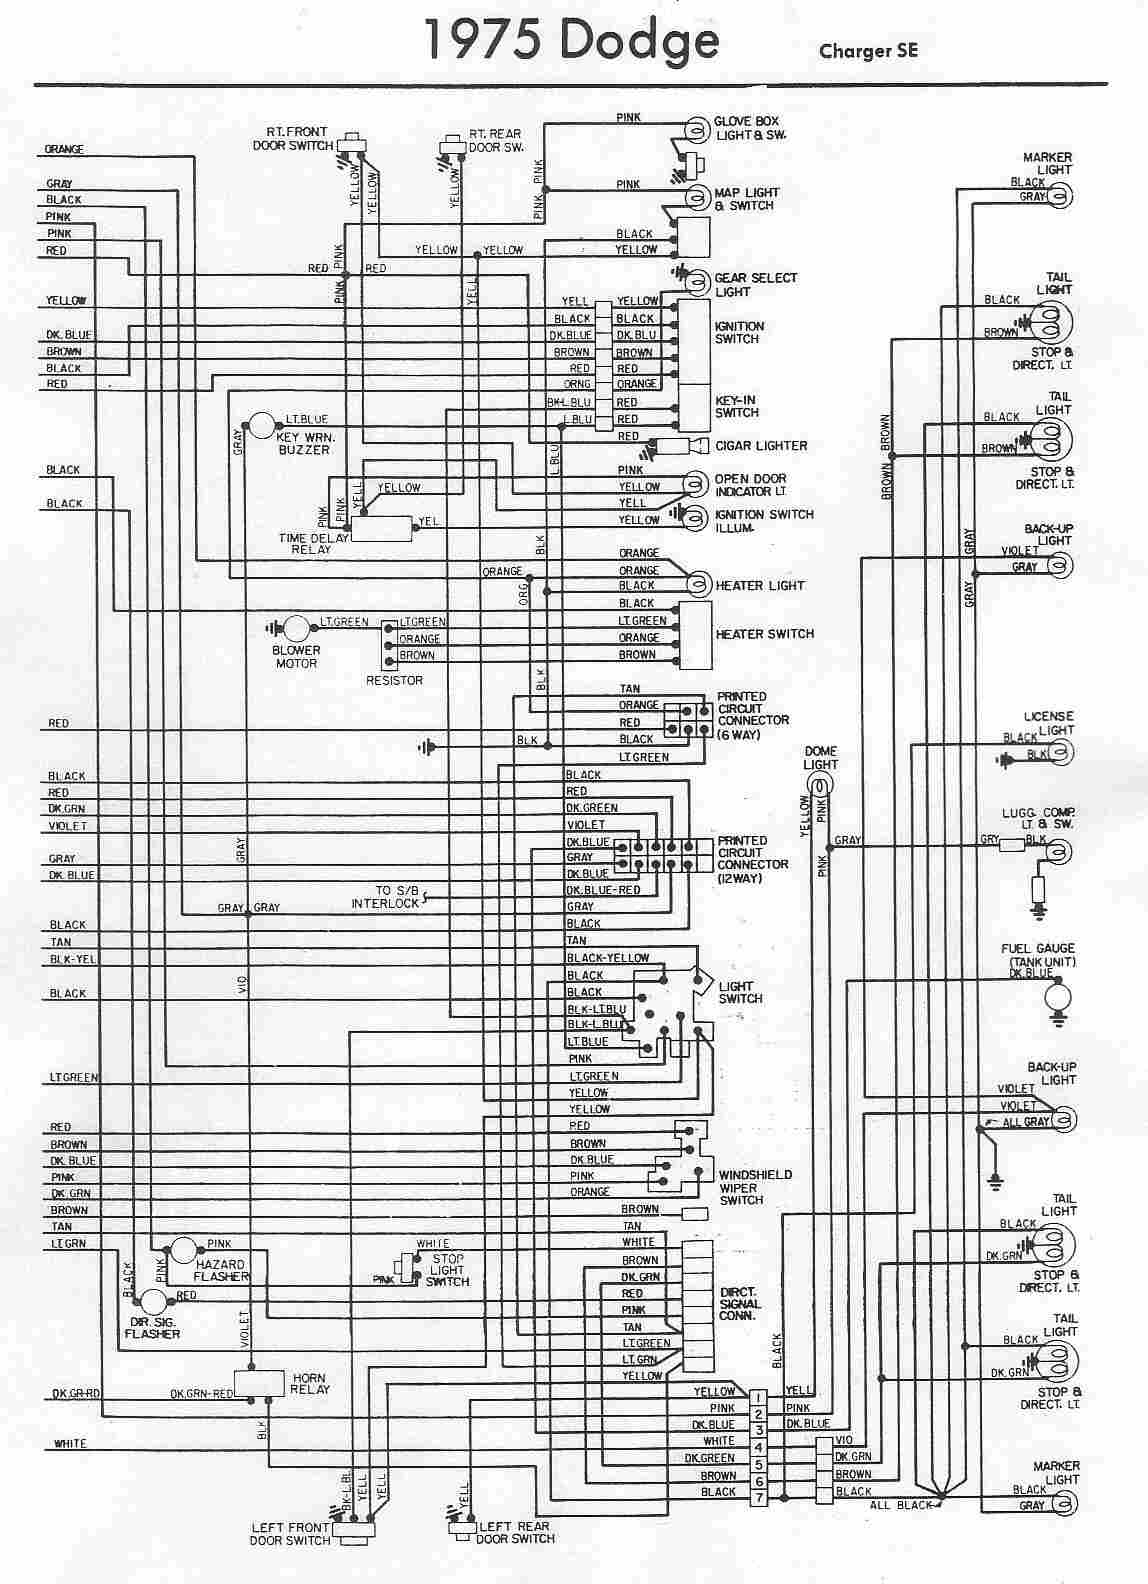 318 engine wiring diagram 2 10 sandybloom nl \u2022318 engine electrical diagram online wiring diagram rh 14 immobilien stammtisch de 318 v8 engine specs 318 chrysler marine engine wiring diagram